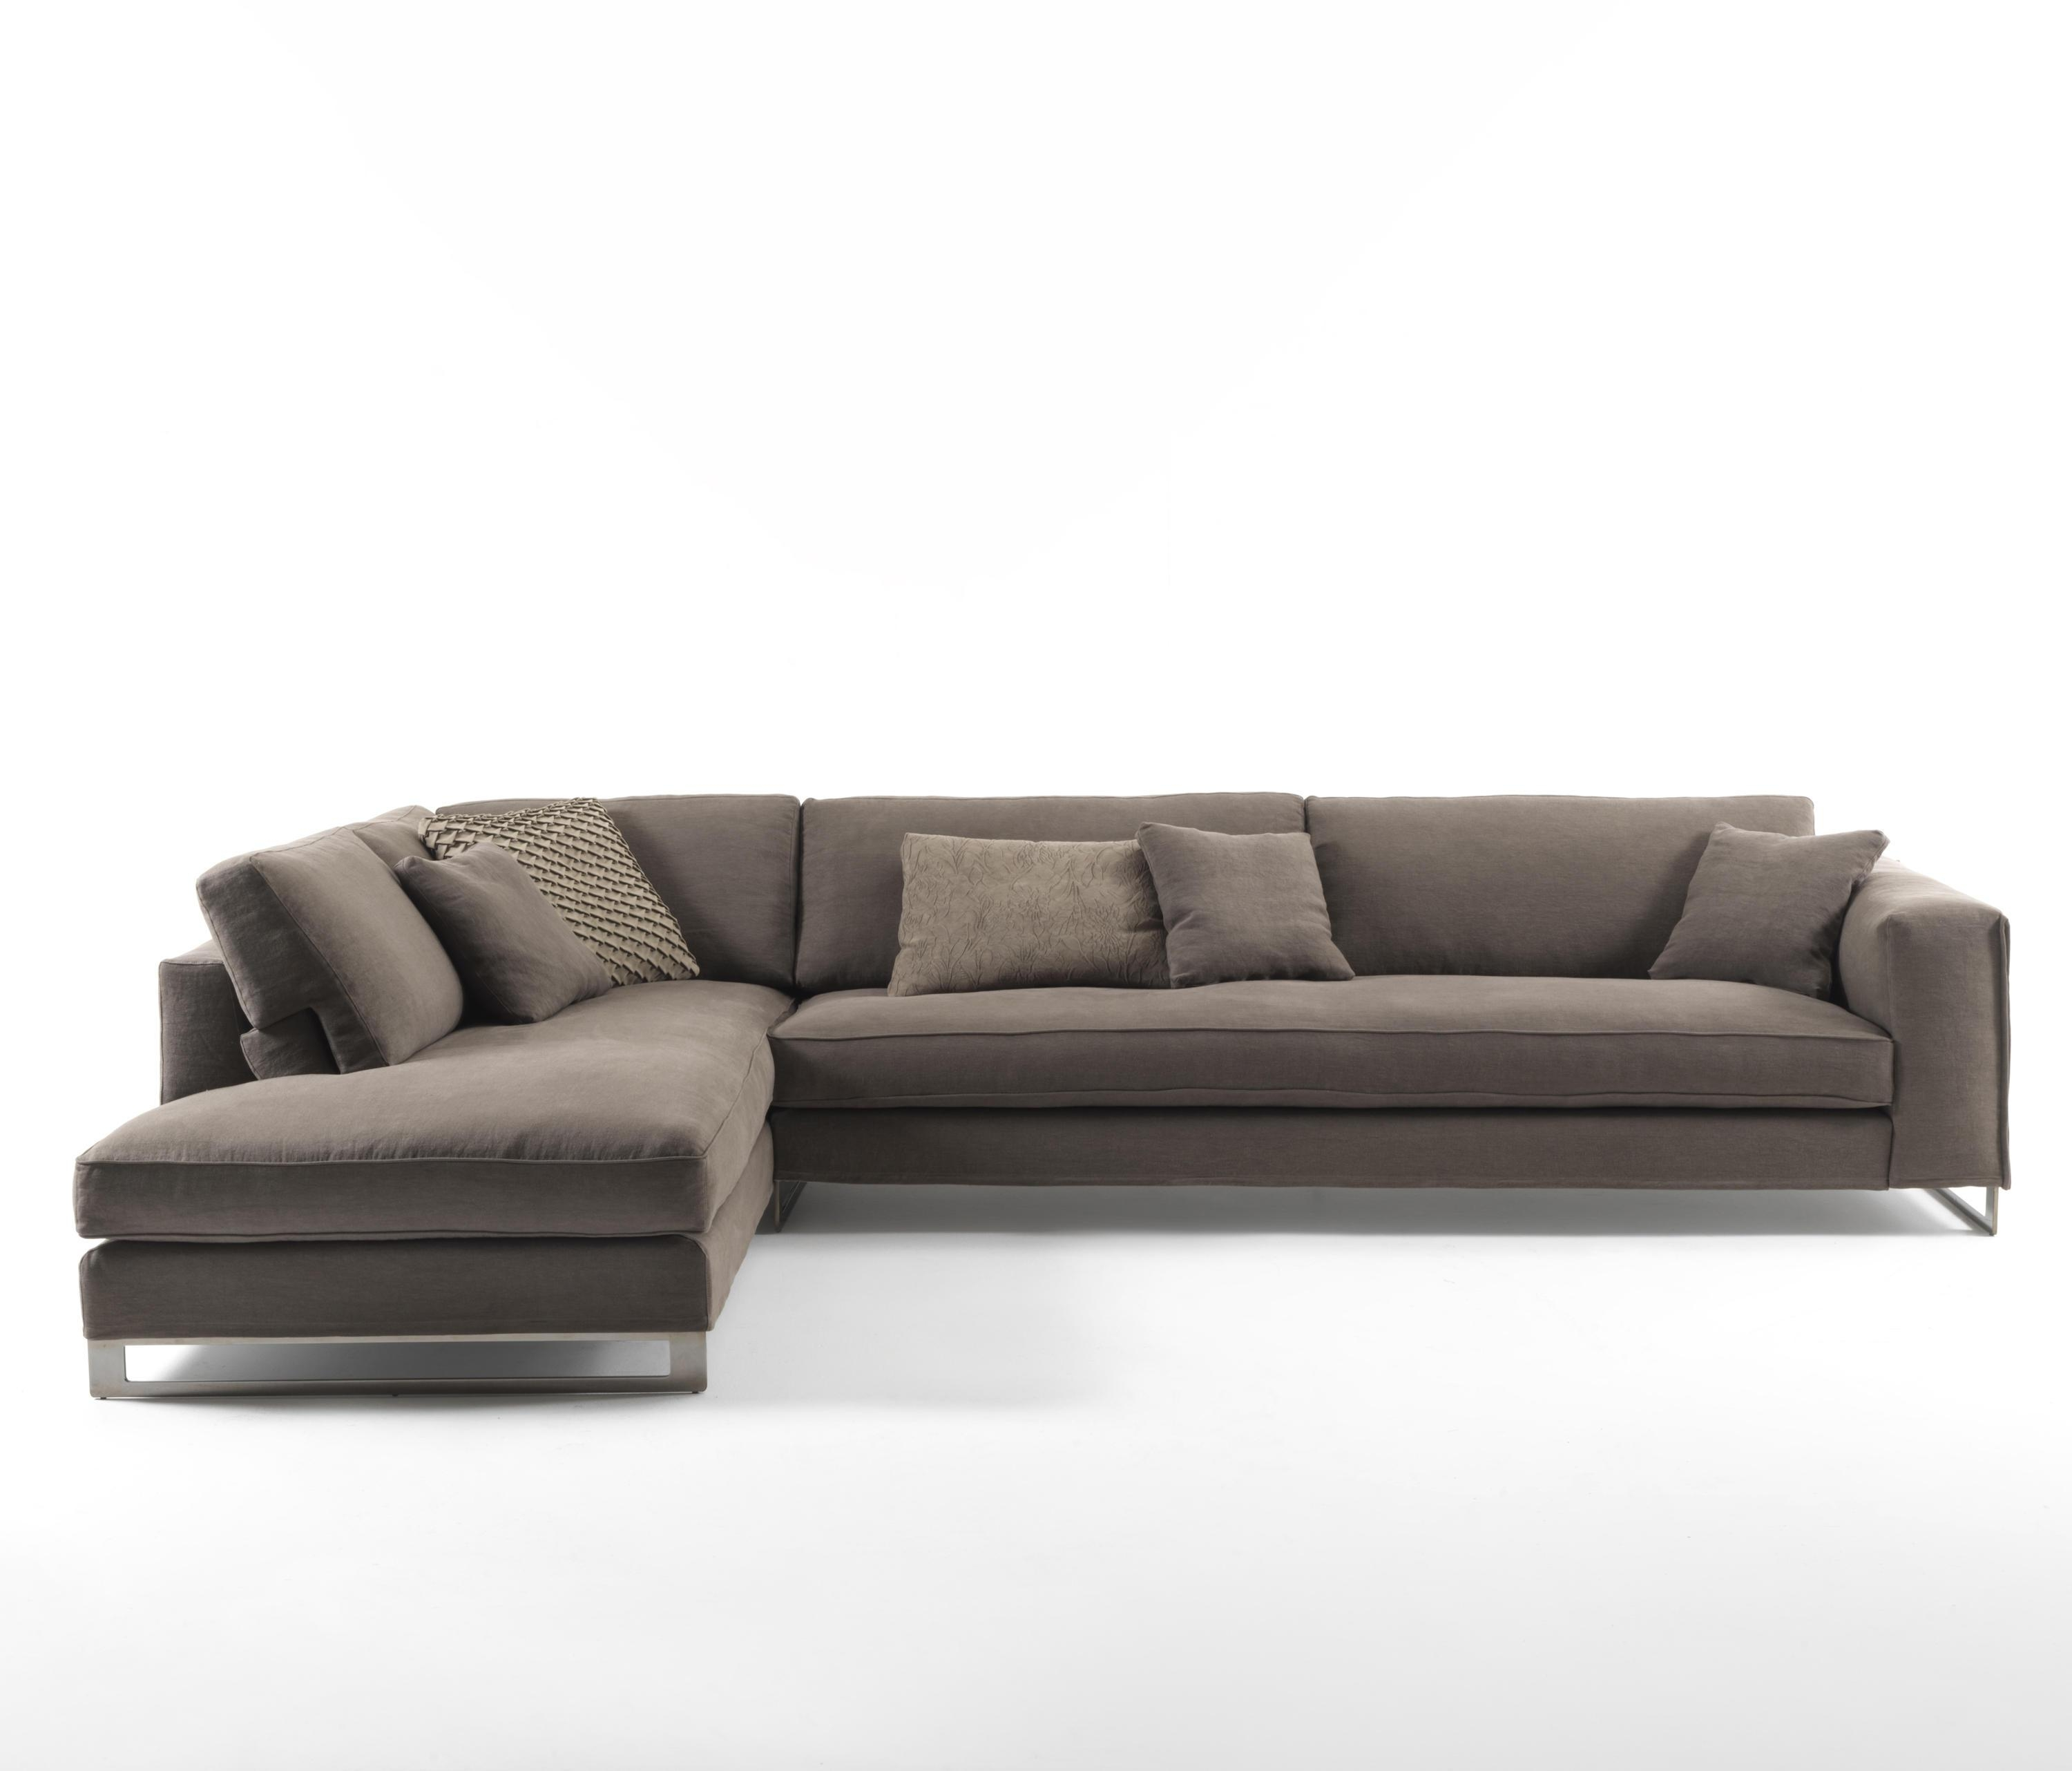 Davis Twin – Sofas From Frigerio | Architonic Intended For Davis Sofas (View 7 of 20)